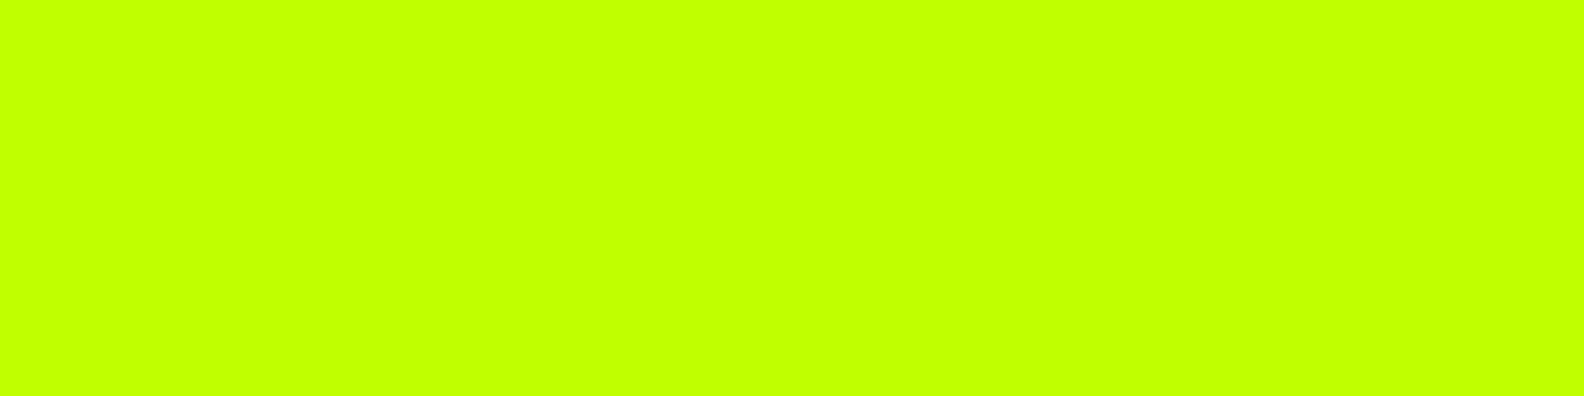 1584x396 Bitter Lime Solid Color Background